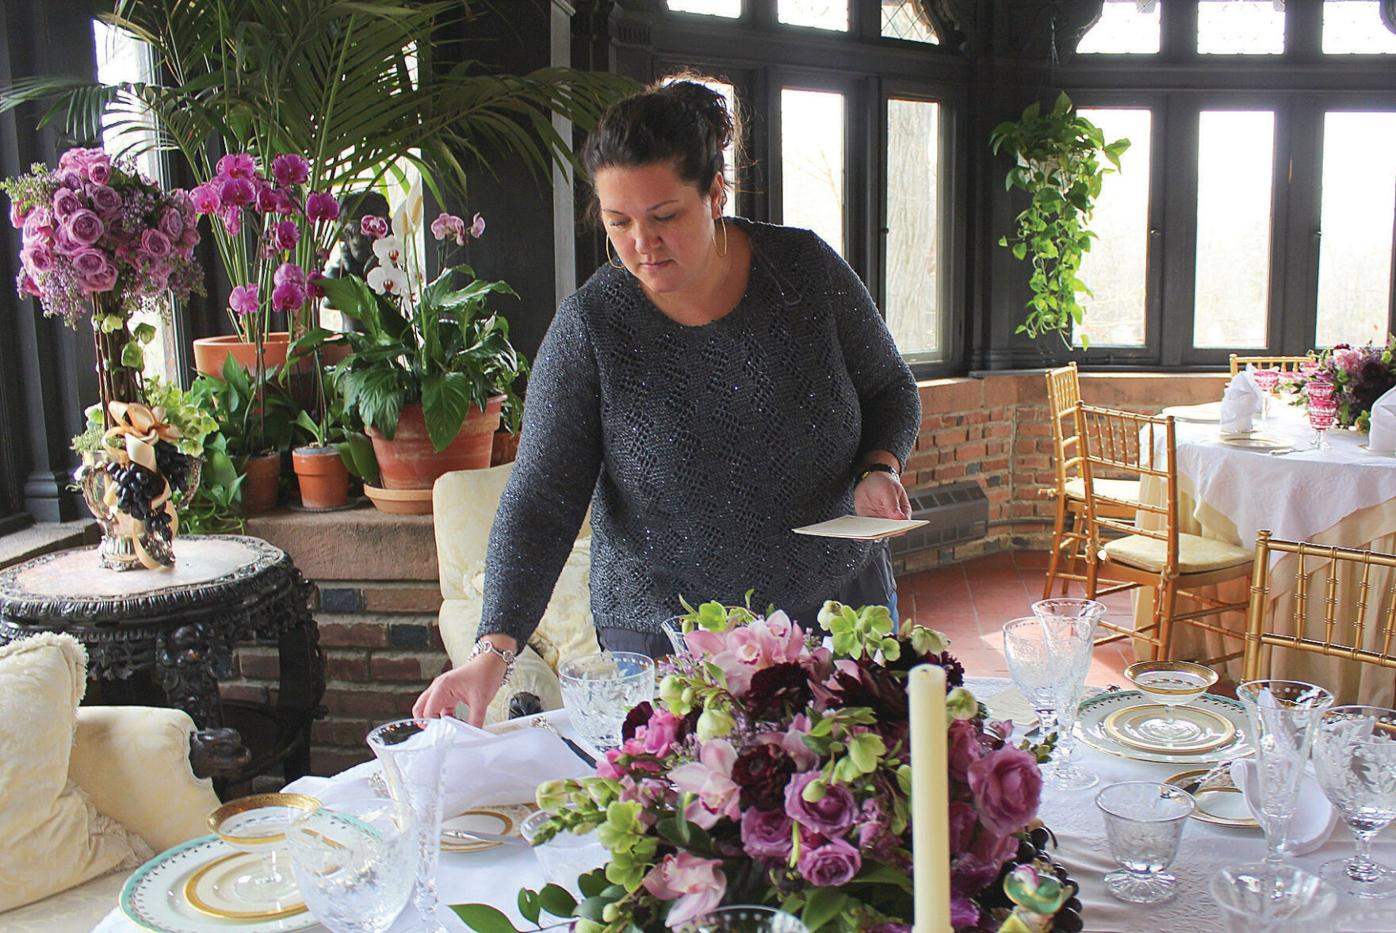 How'd you get that job: As a wedding planner, 'You never know what's going to happen'